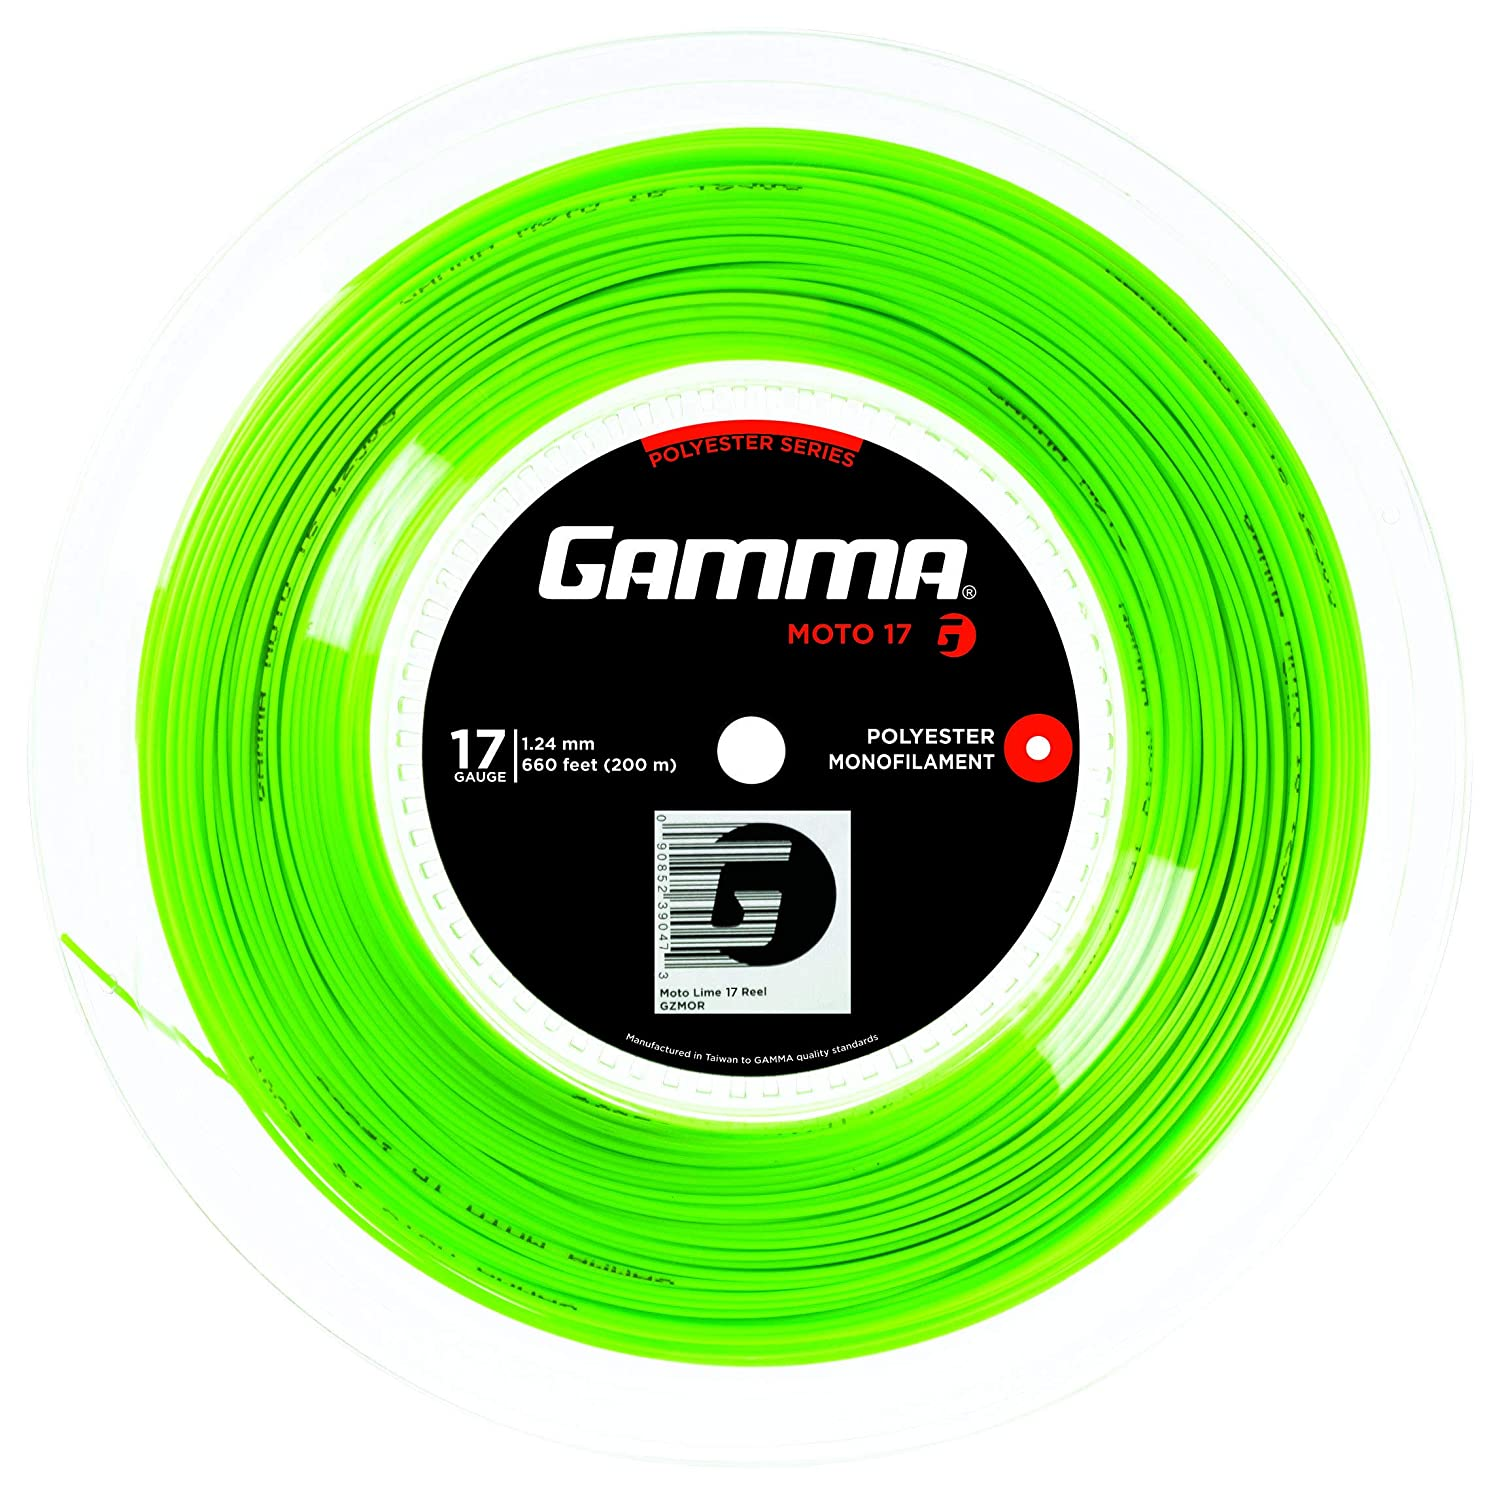 Black, Lime Spin and Control Gamma Sports AMP MOTO Tennis Racket String Polyester Series- Heptagonal Shape Delivers Maximum Ball Bite 16 or 17 Gauge Power